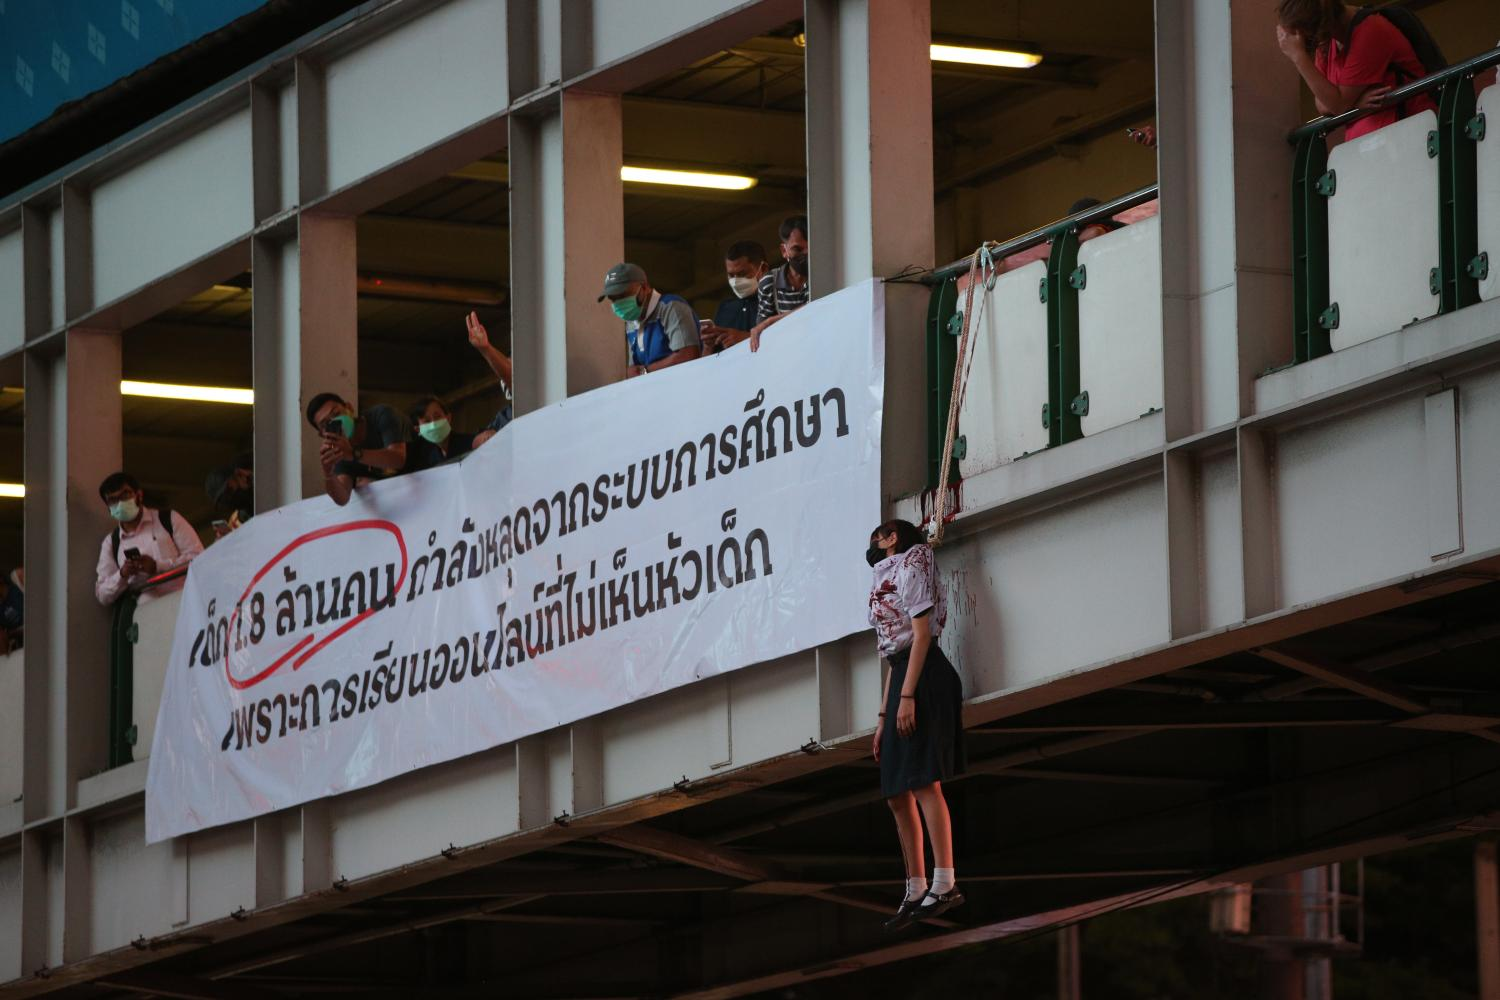 A campaign held at Asoke intersection in Bangkok by the Bad Students group. It portrays a student committing mock suicide to protest against the failure of on-line education.Pattarapong Chatpattarasill